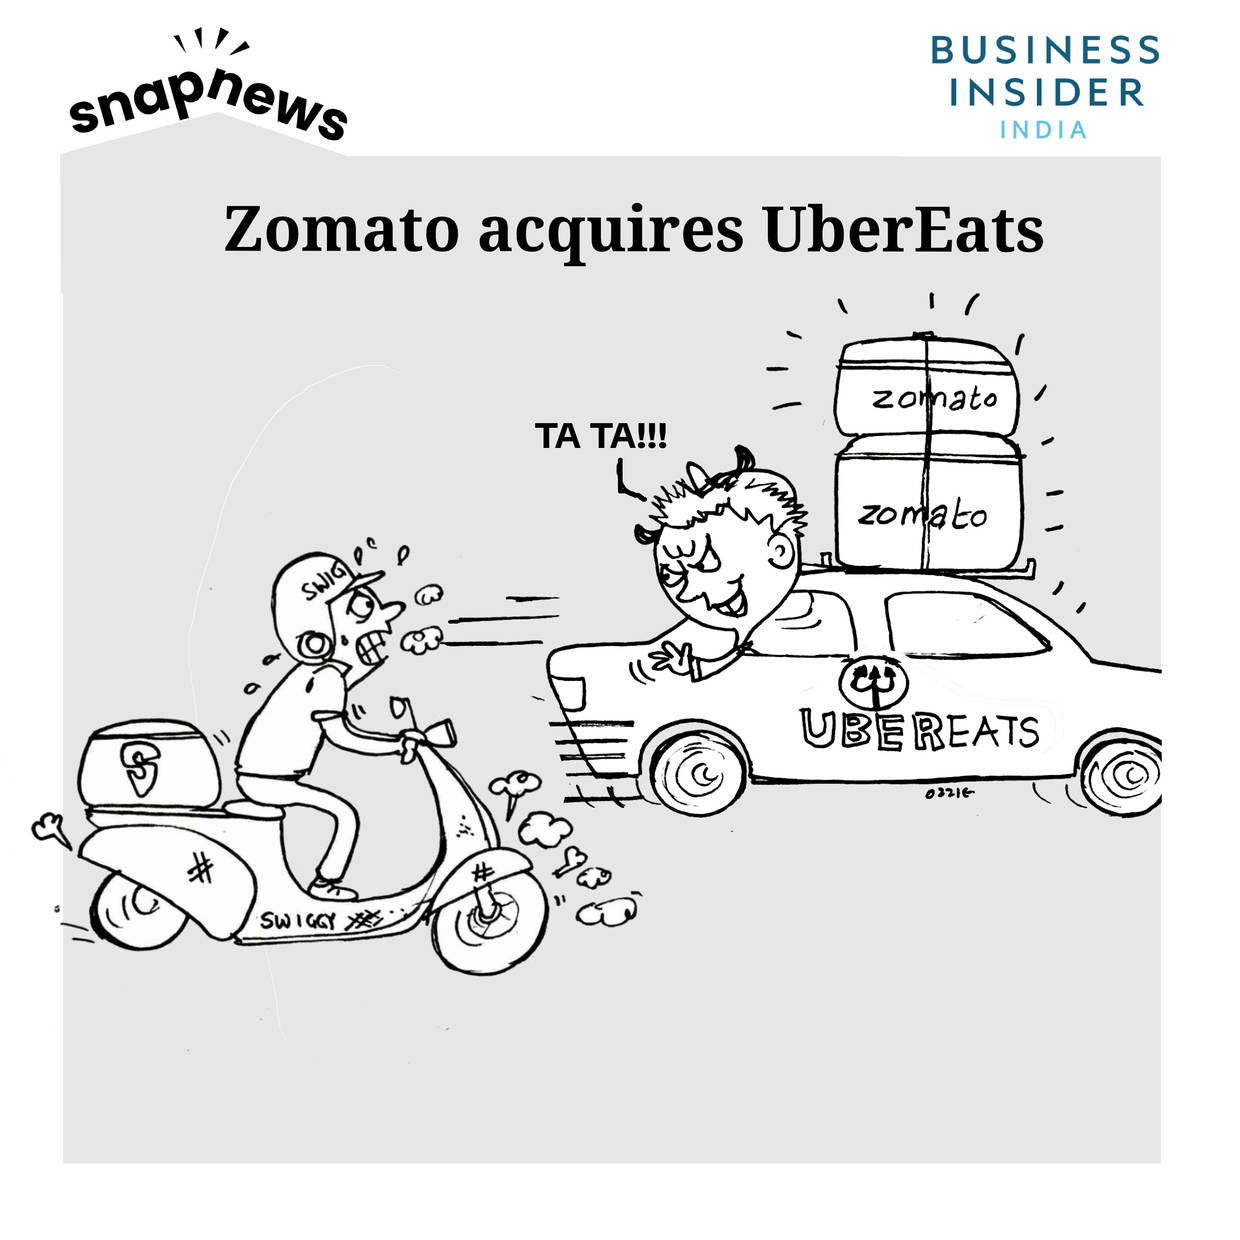 Uber couldn't do what Ola did – instead joins hands with Zomato to leave behind Swiggy